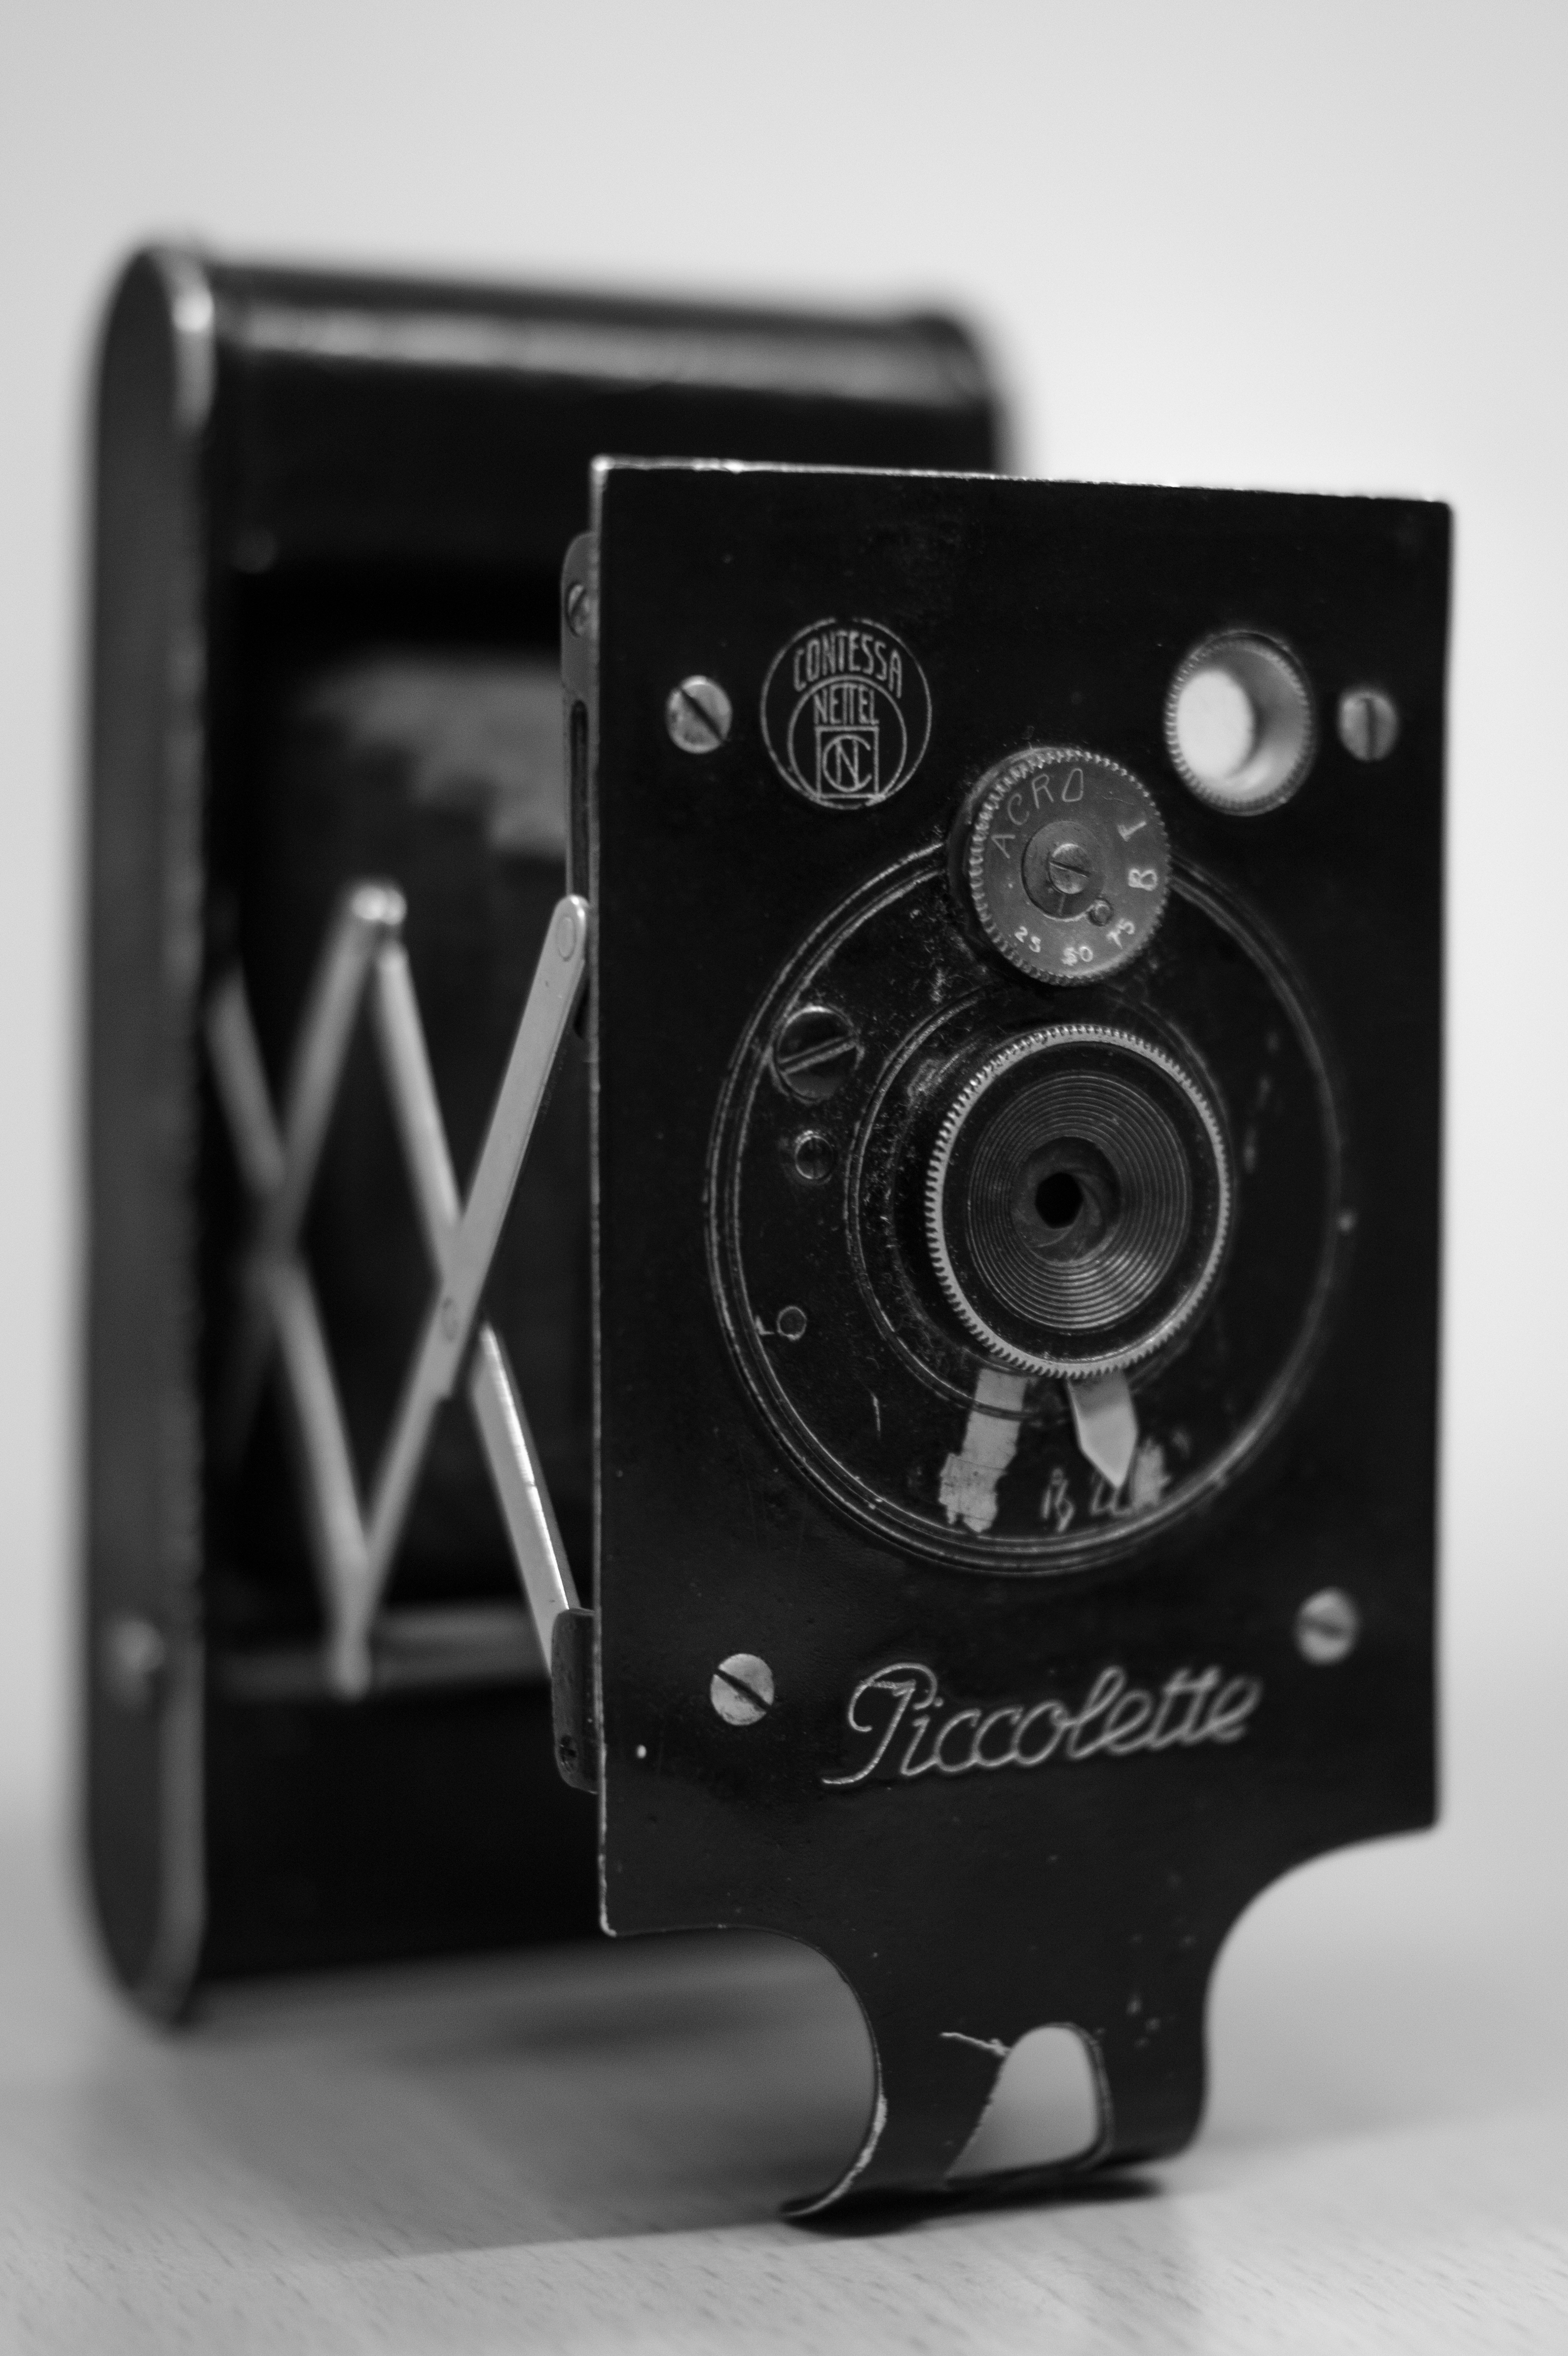 Free stock photo of black-and-white, camera, classic